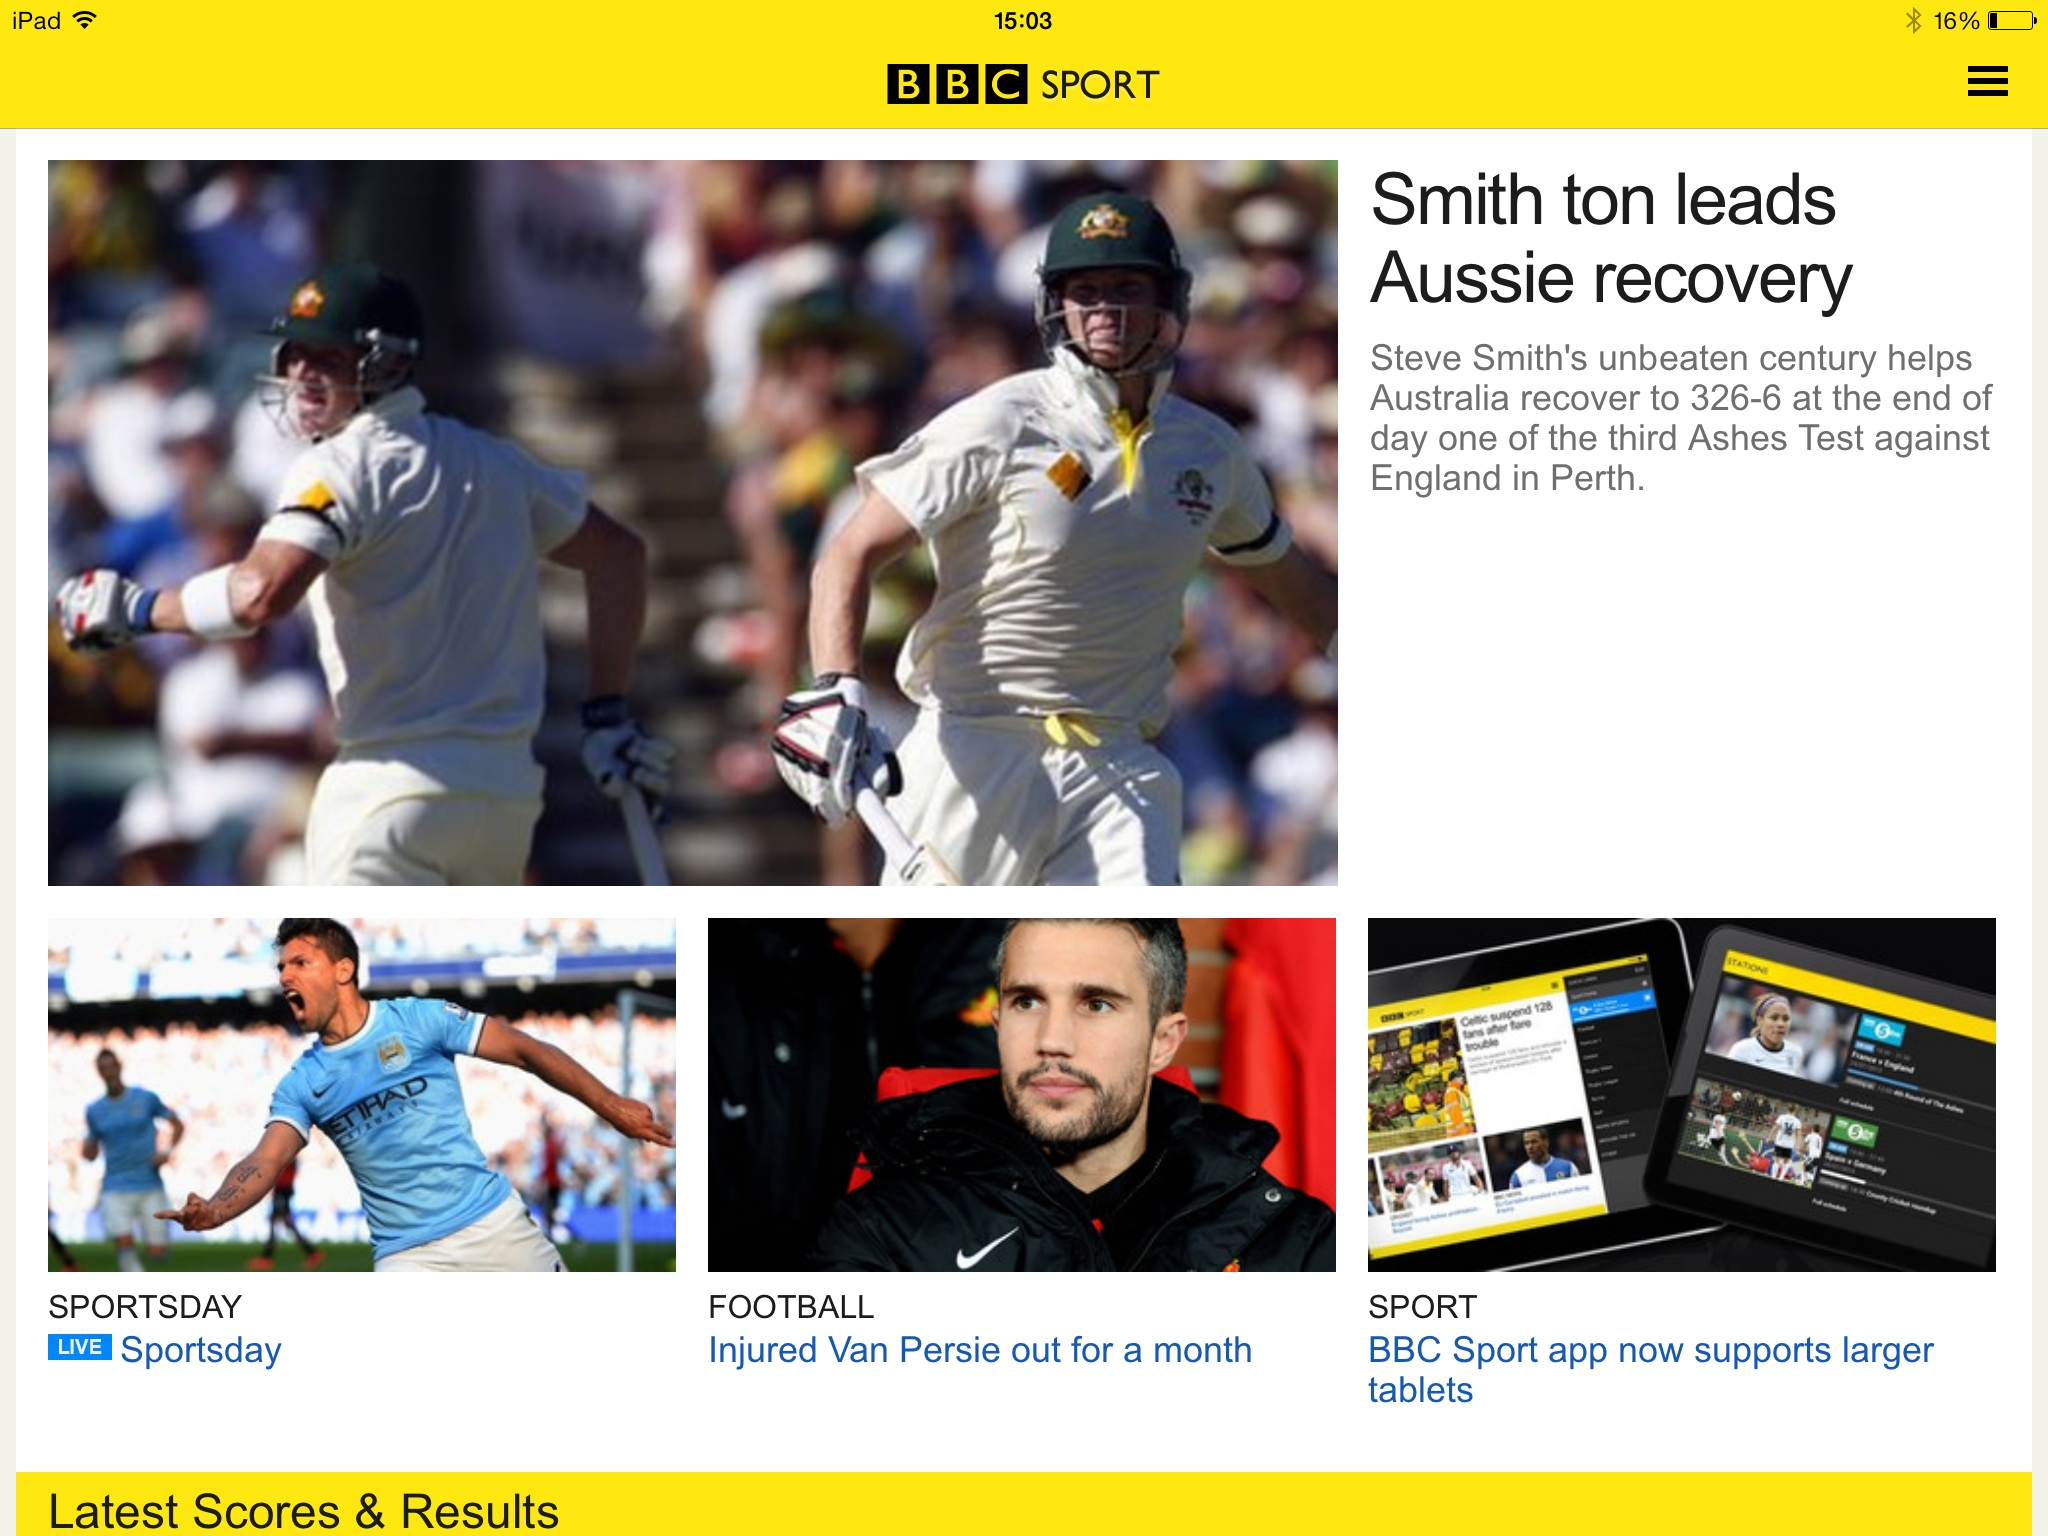 British Sports Fans Can Now Use The BBC Sport App On An iPad